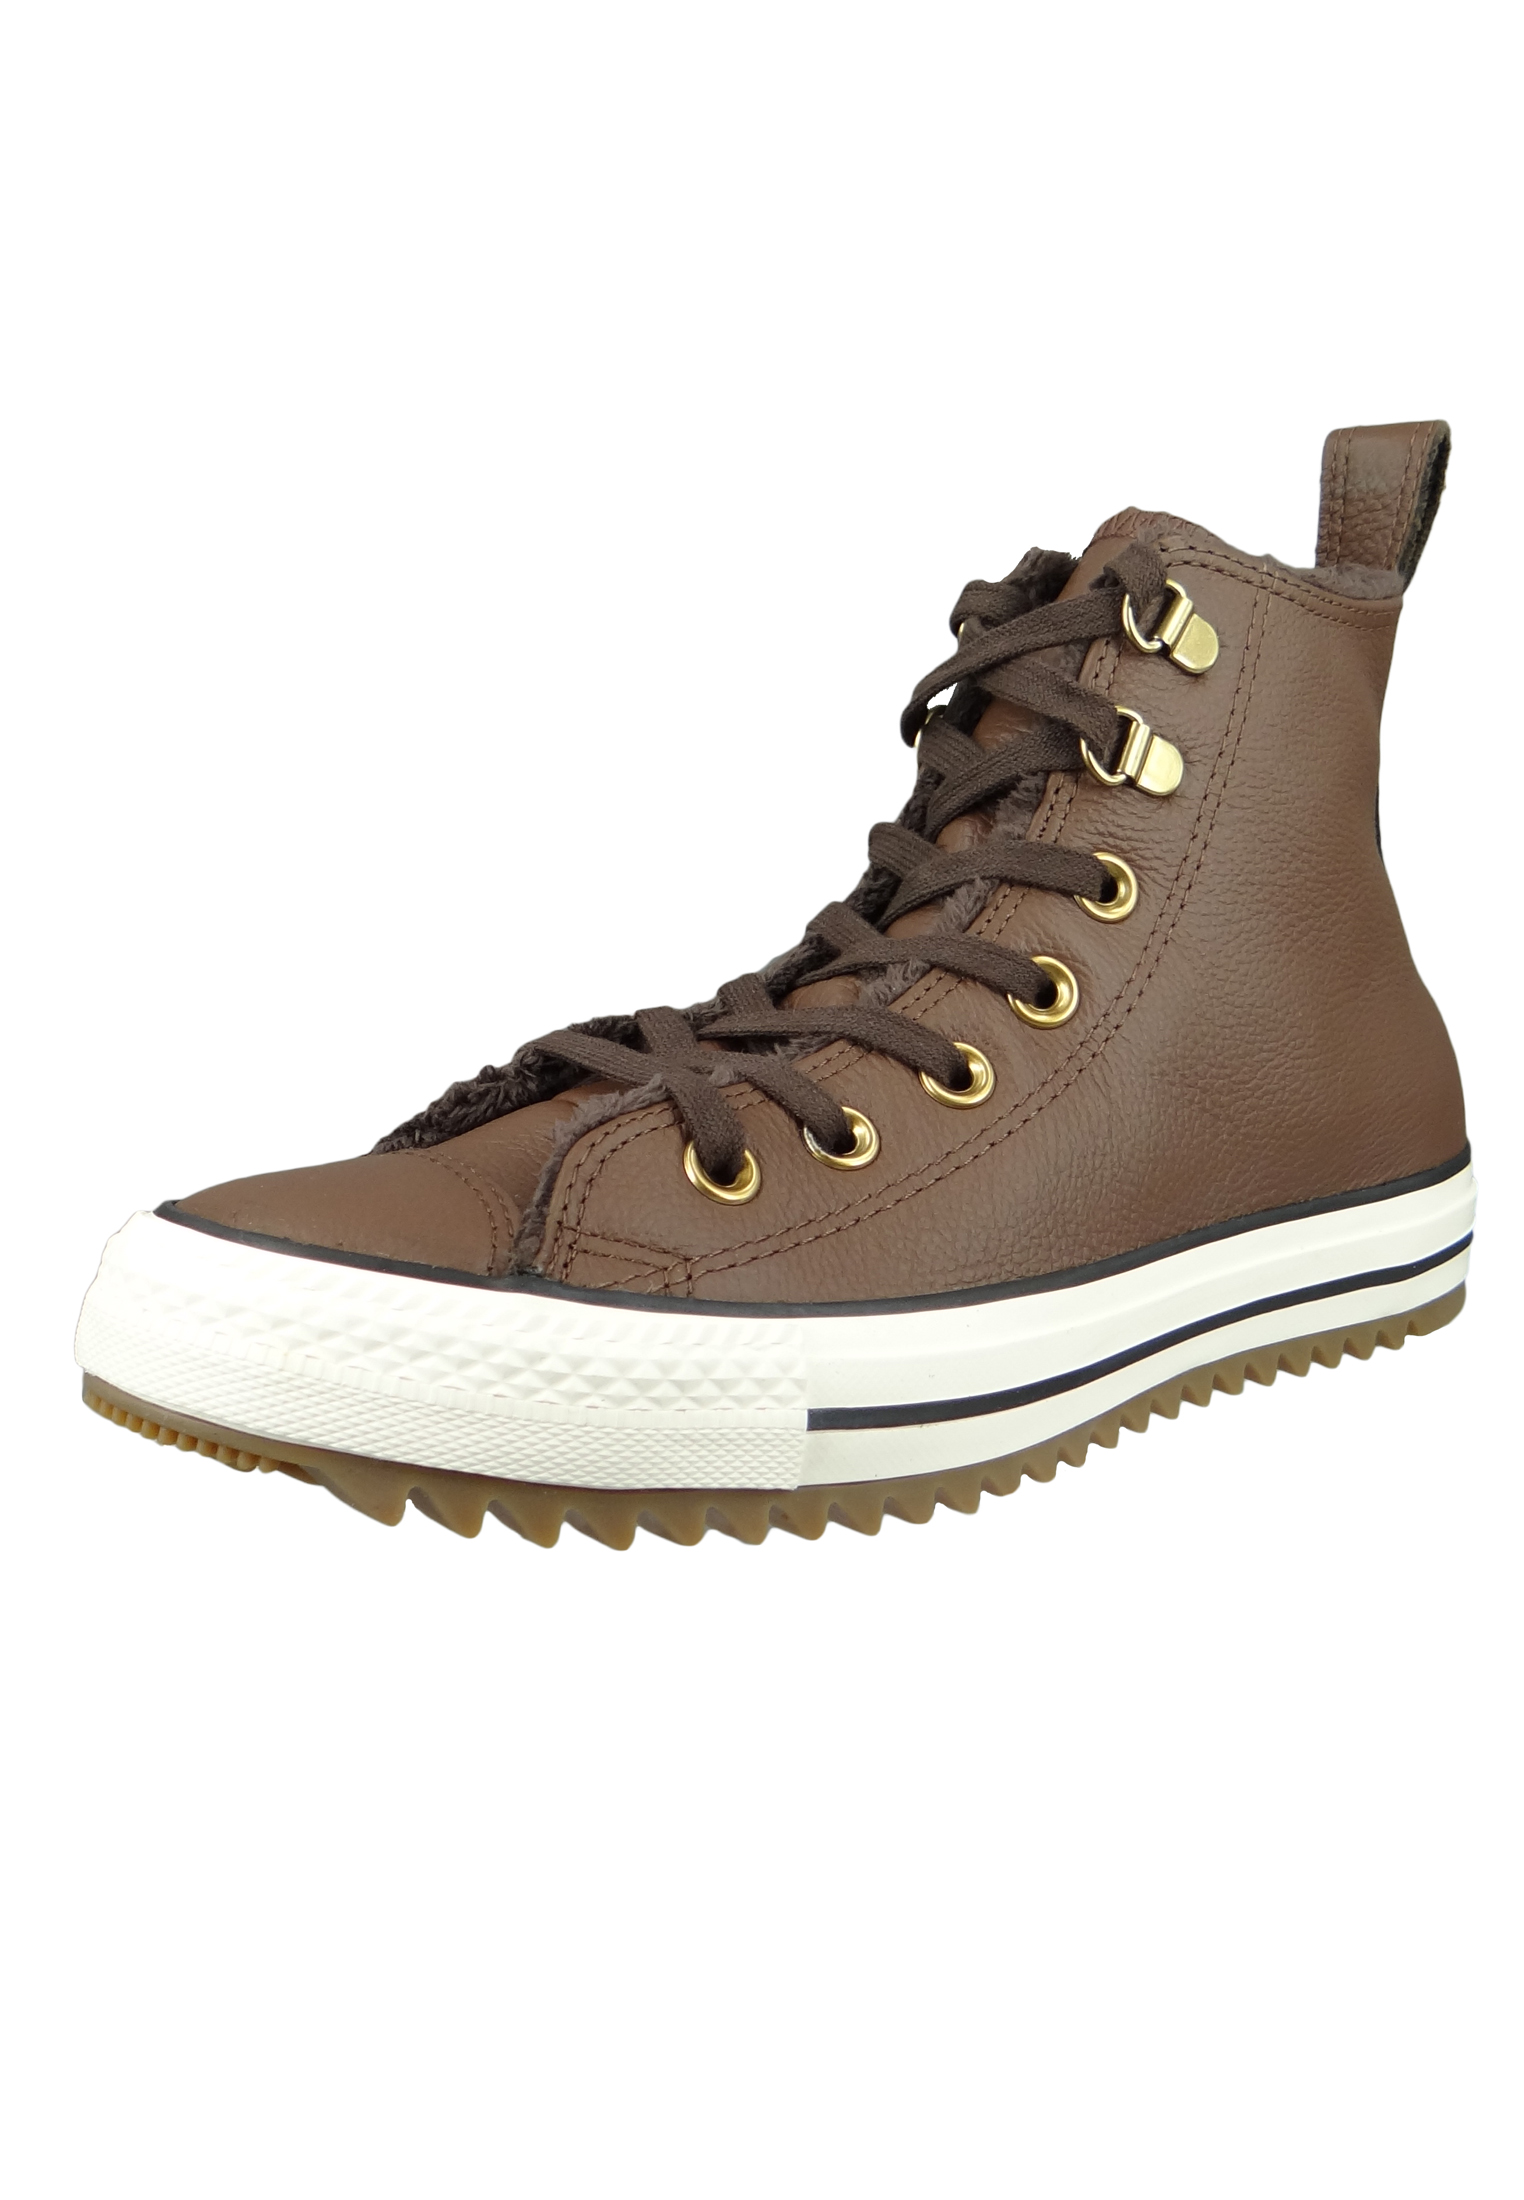 df370556f9dd13 Converse Chucks 161514C Braun CHUCK TAYLOR ALL STAR Hiker Boot HI Chocolate  Egret Gum